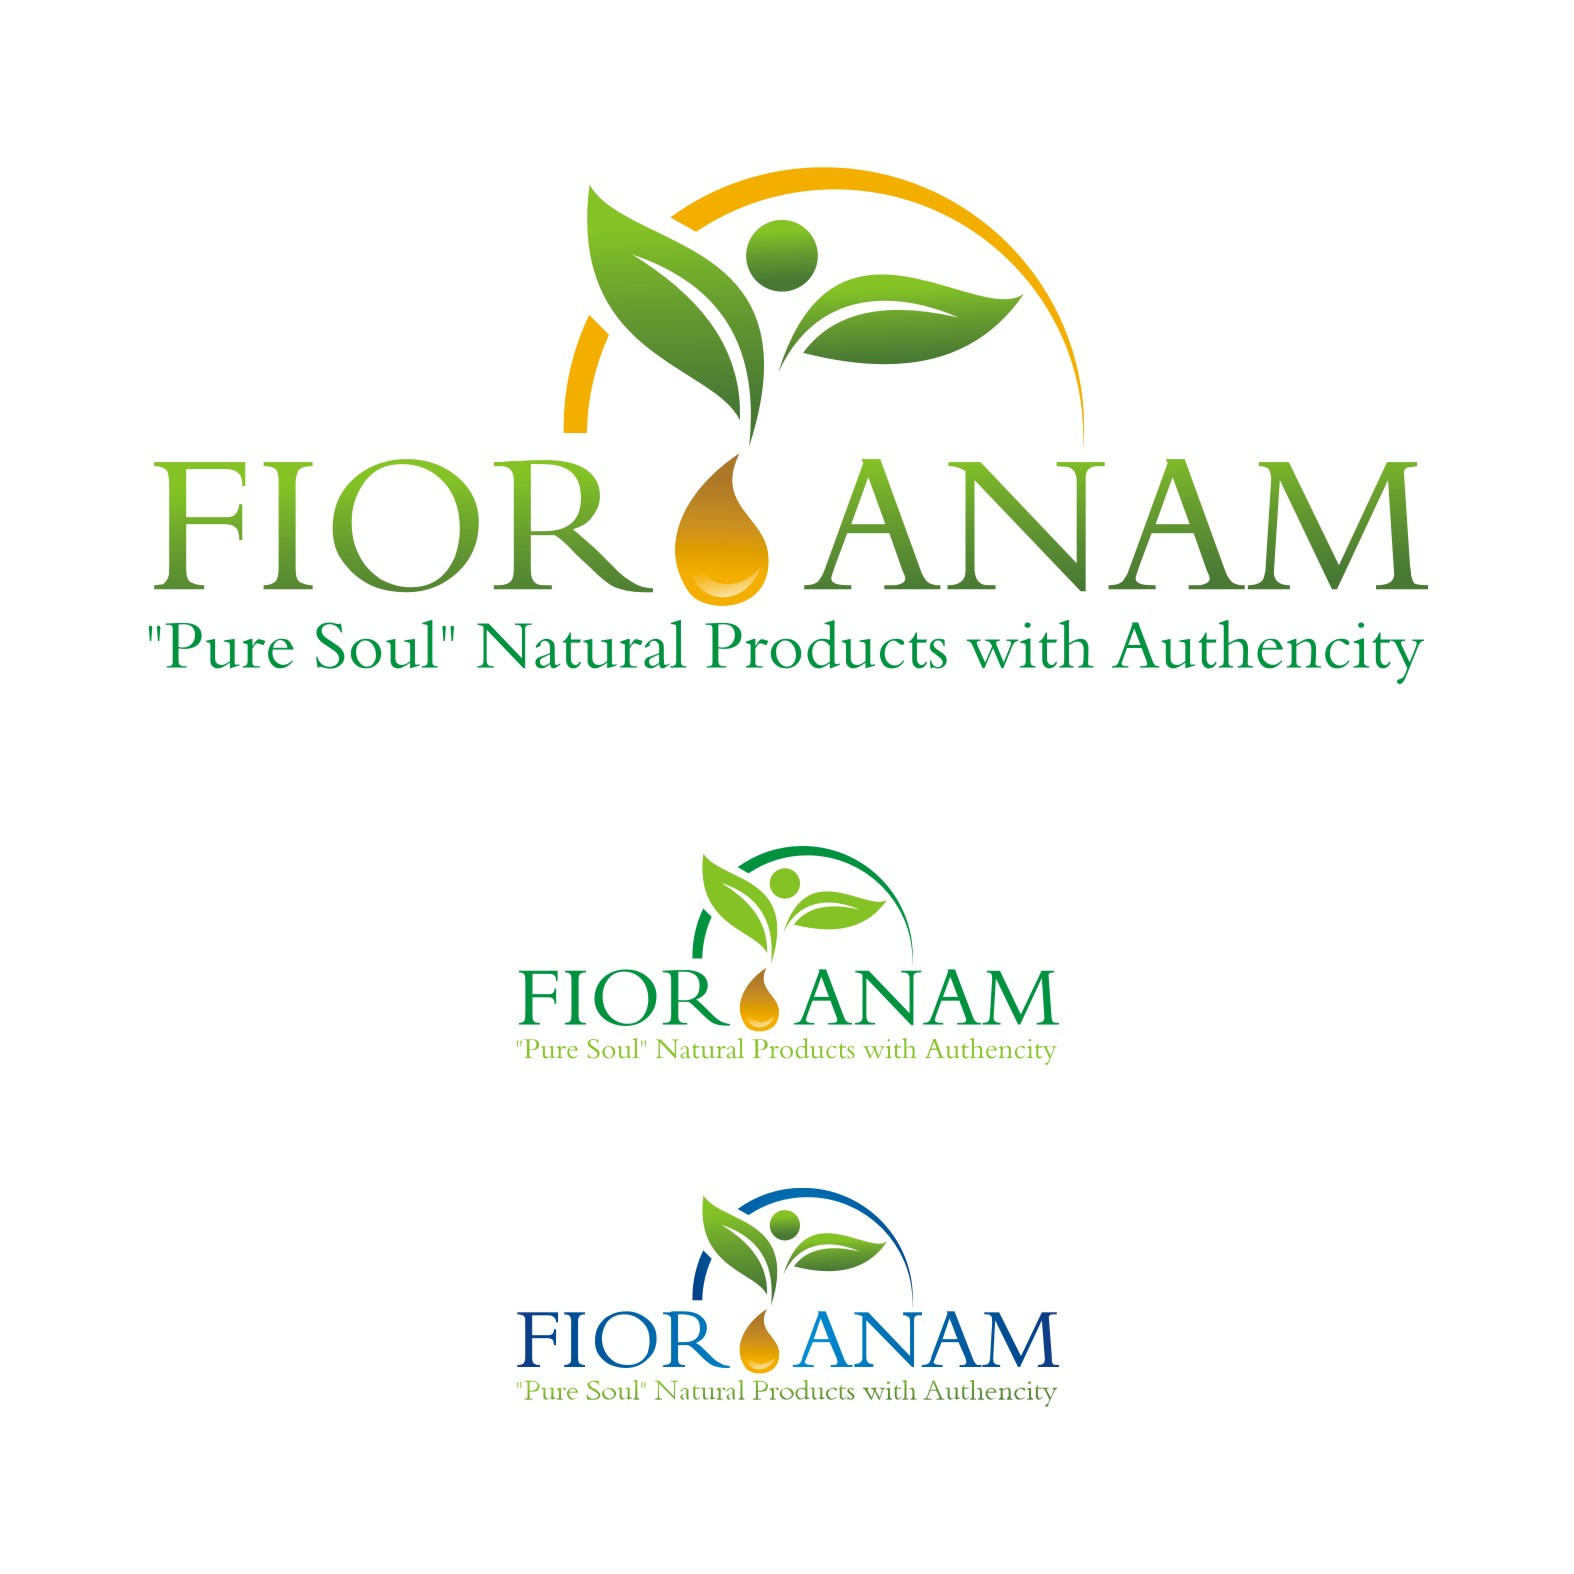 Logo Design by Lynx Graphics - Entry No. 313 in the Logo Design Contest Creative Logo Design for Fior Anam.